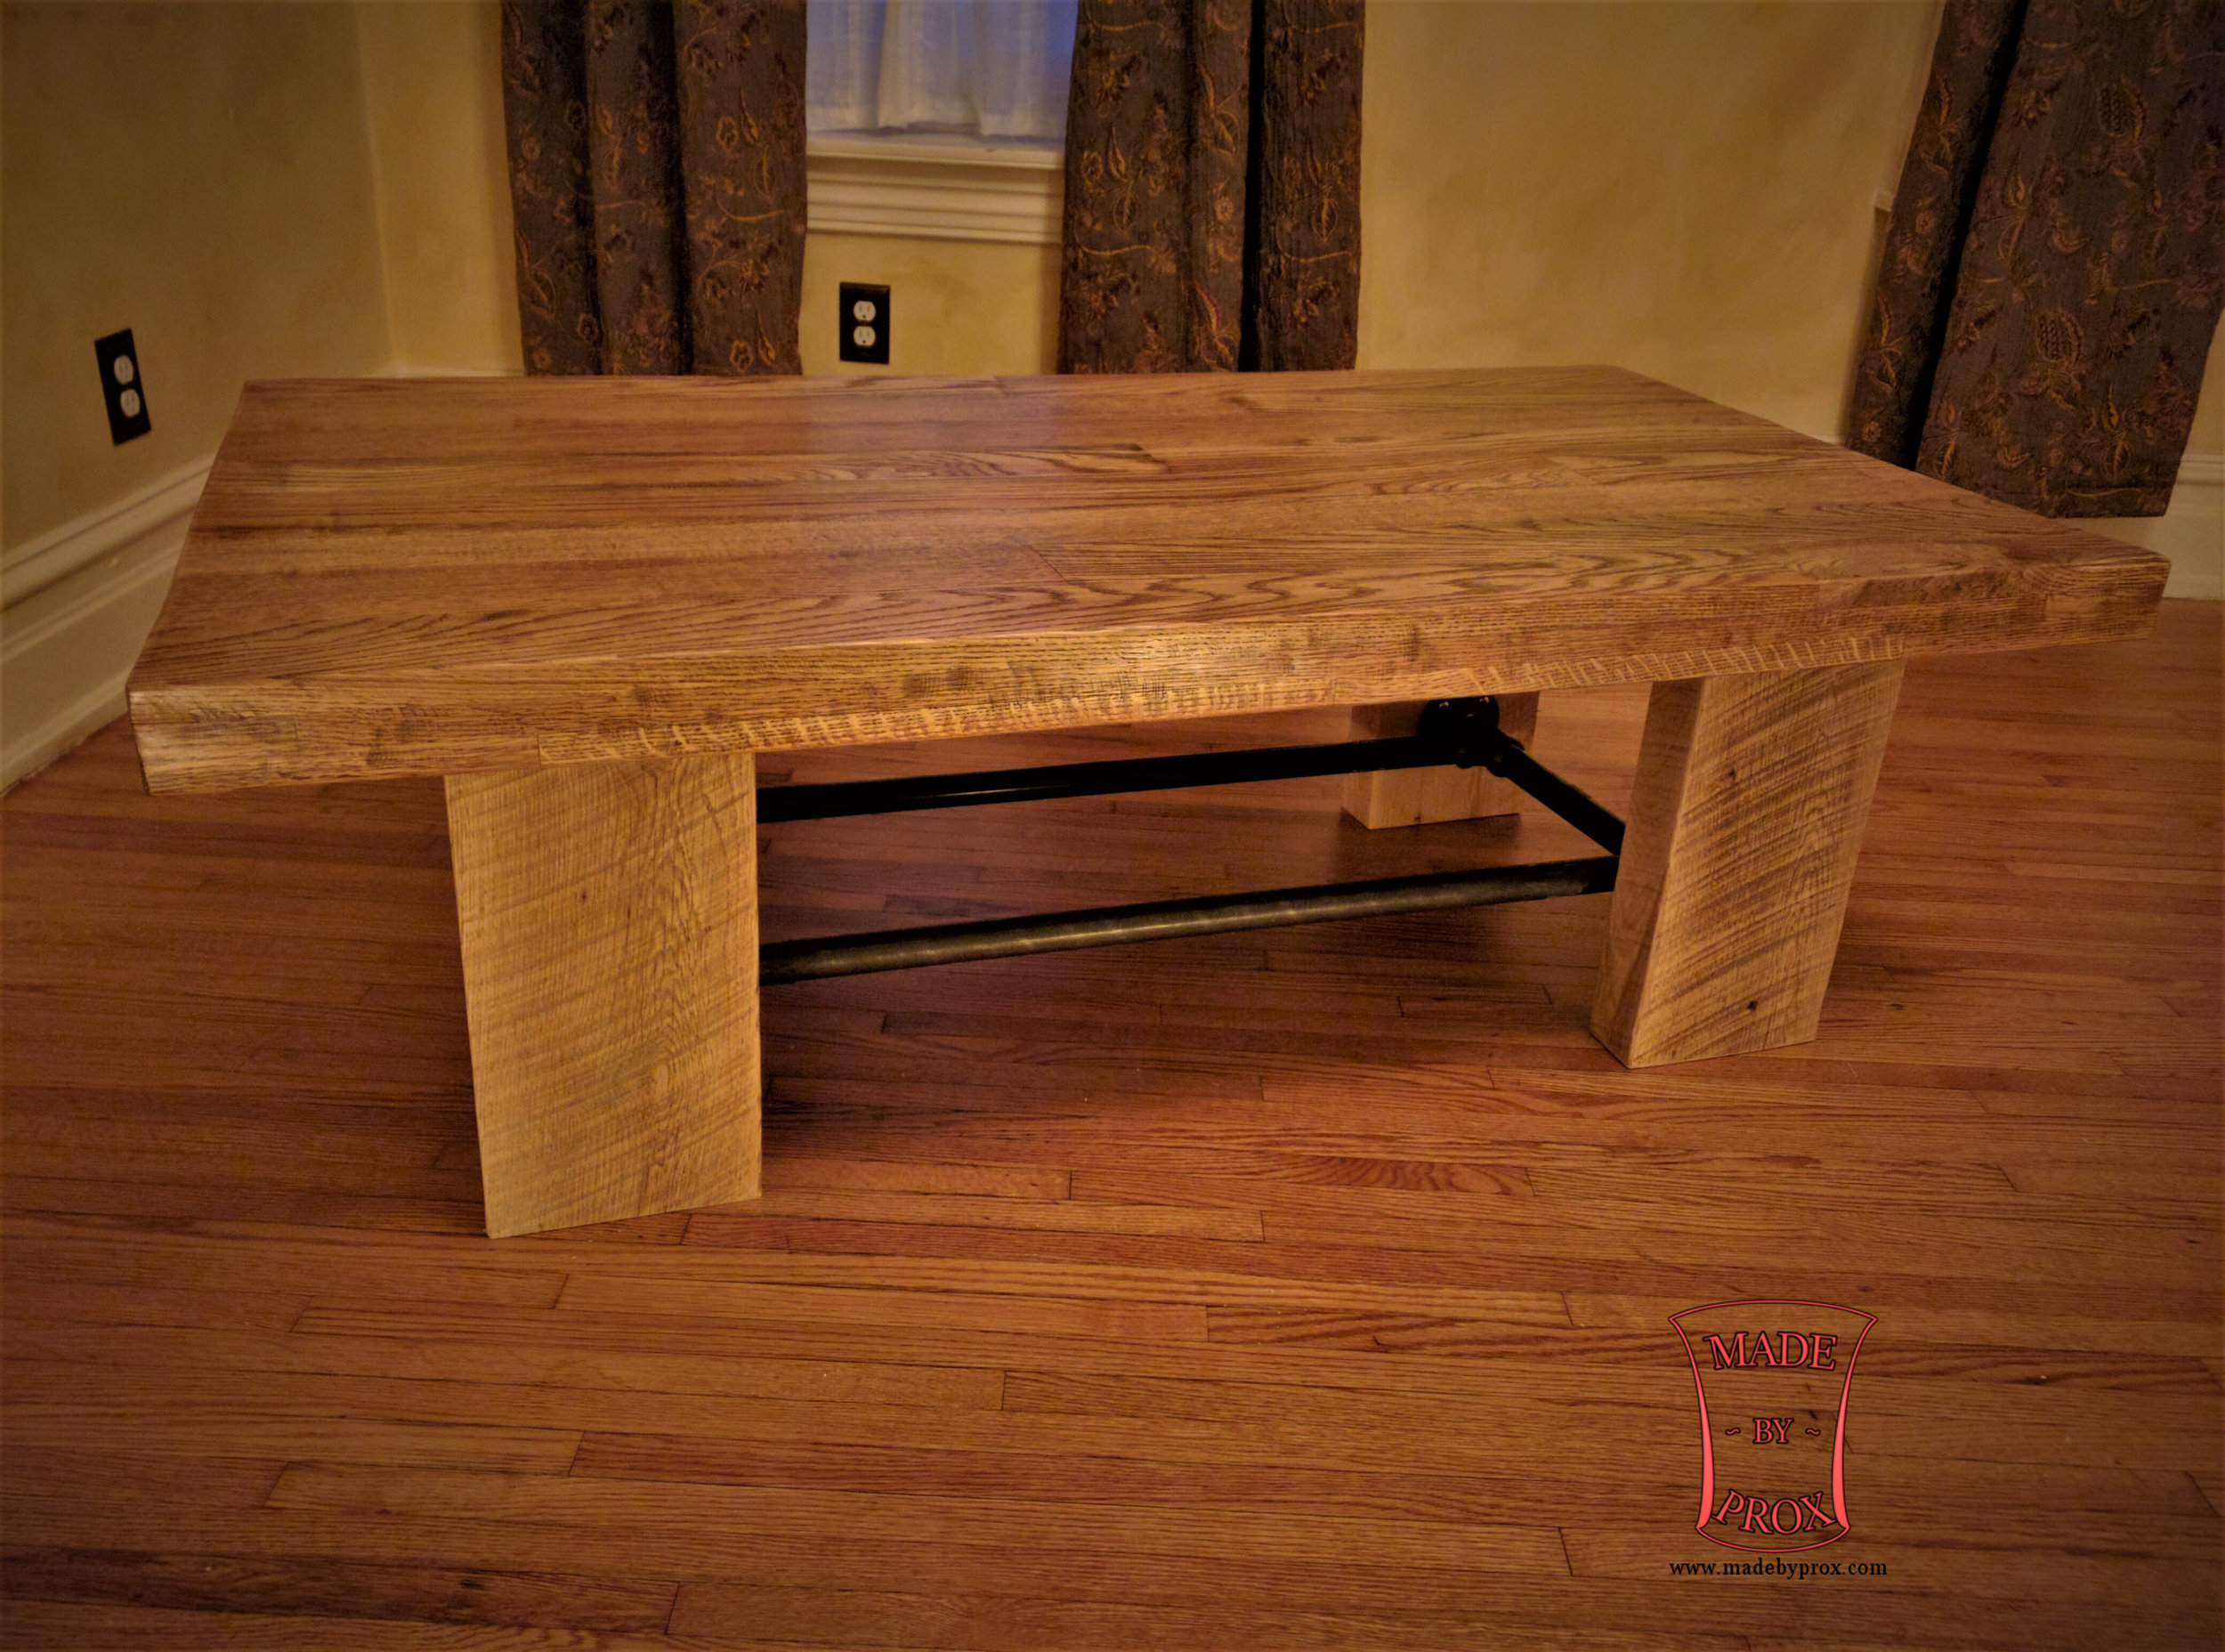 Roughsawn Pipe Table  Starting at $495  Shown inWhite Oak and Amish Oak